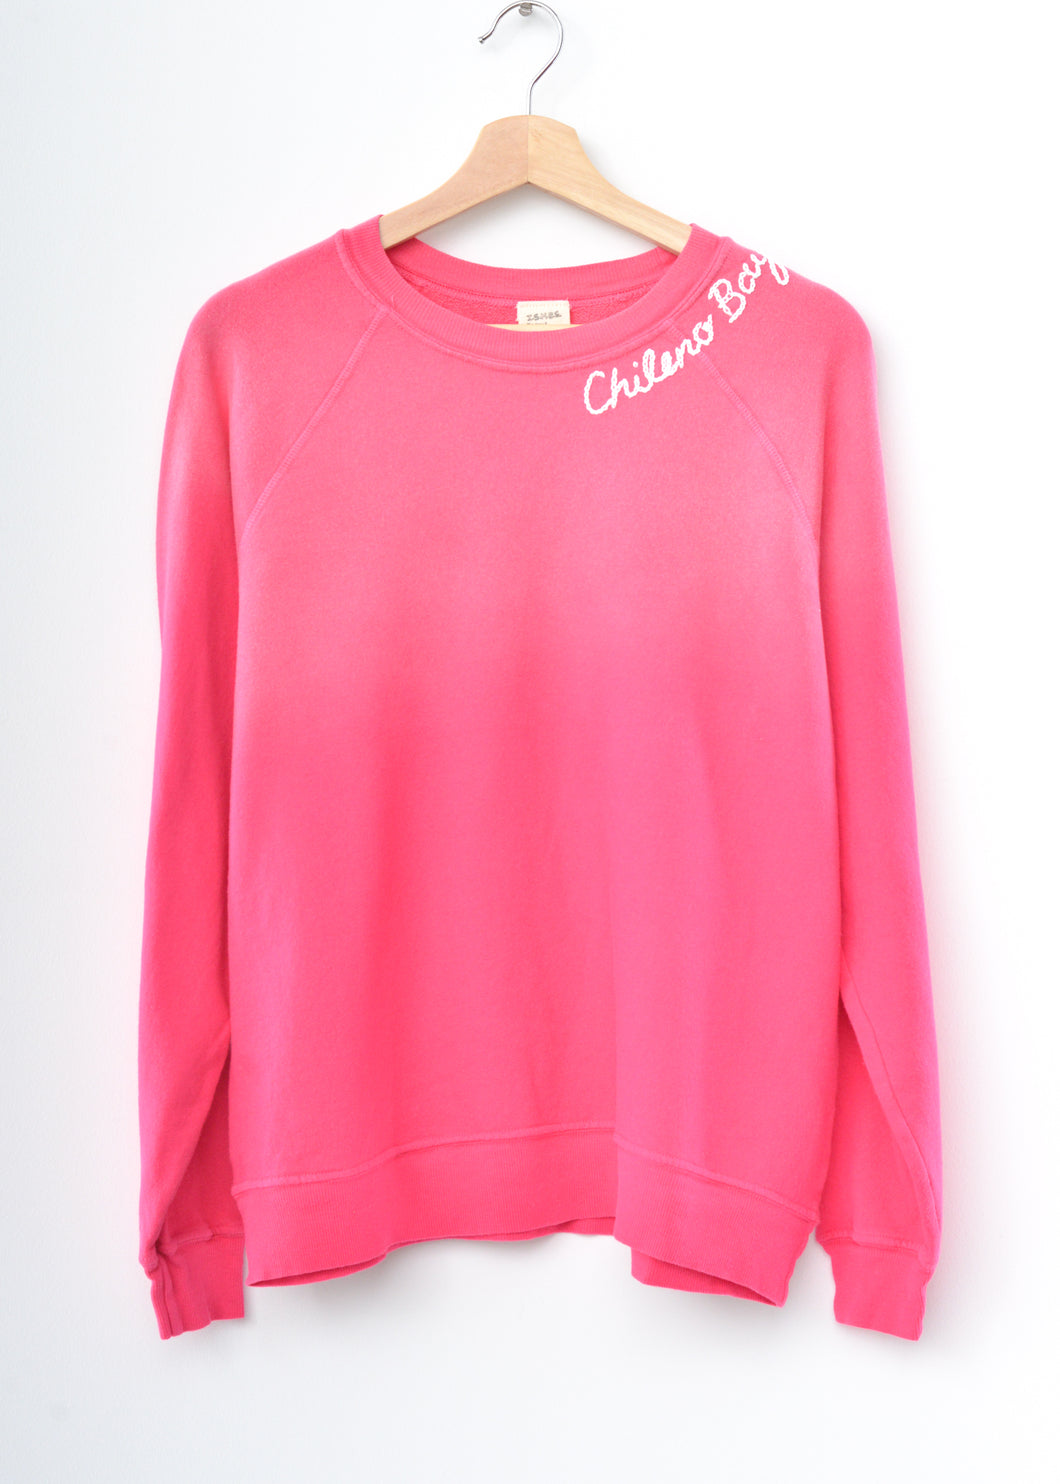 Chileno Bay Sweatshirt - Fuchsia Rose